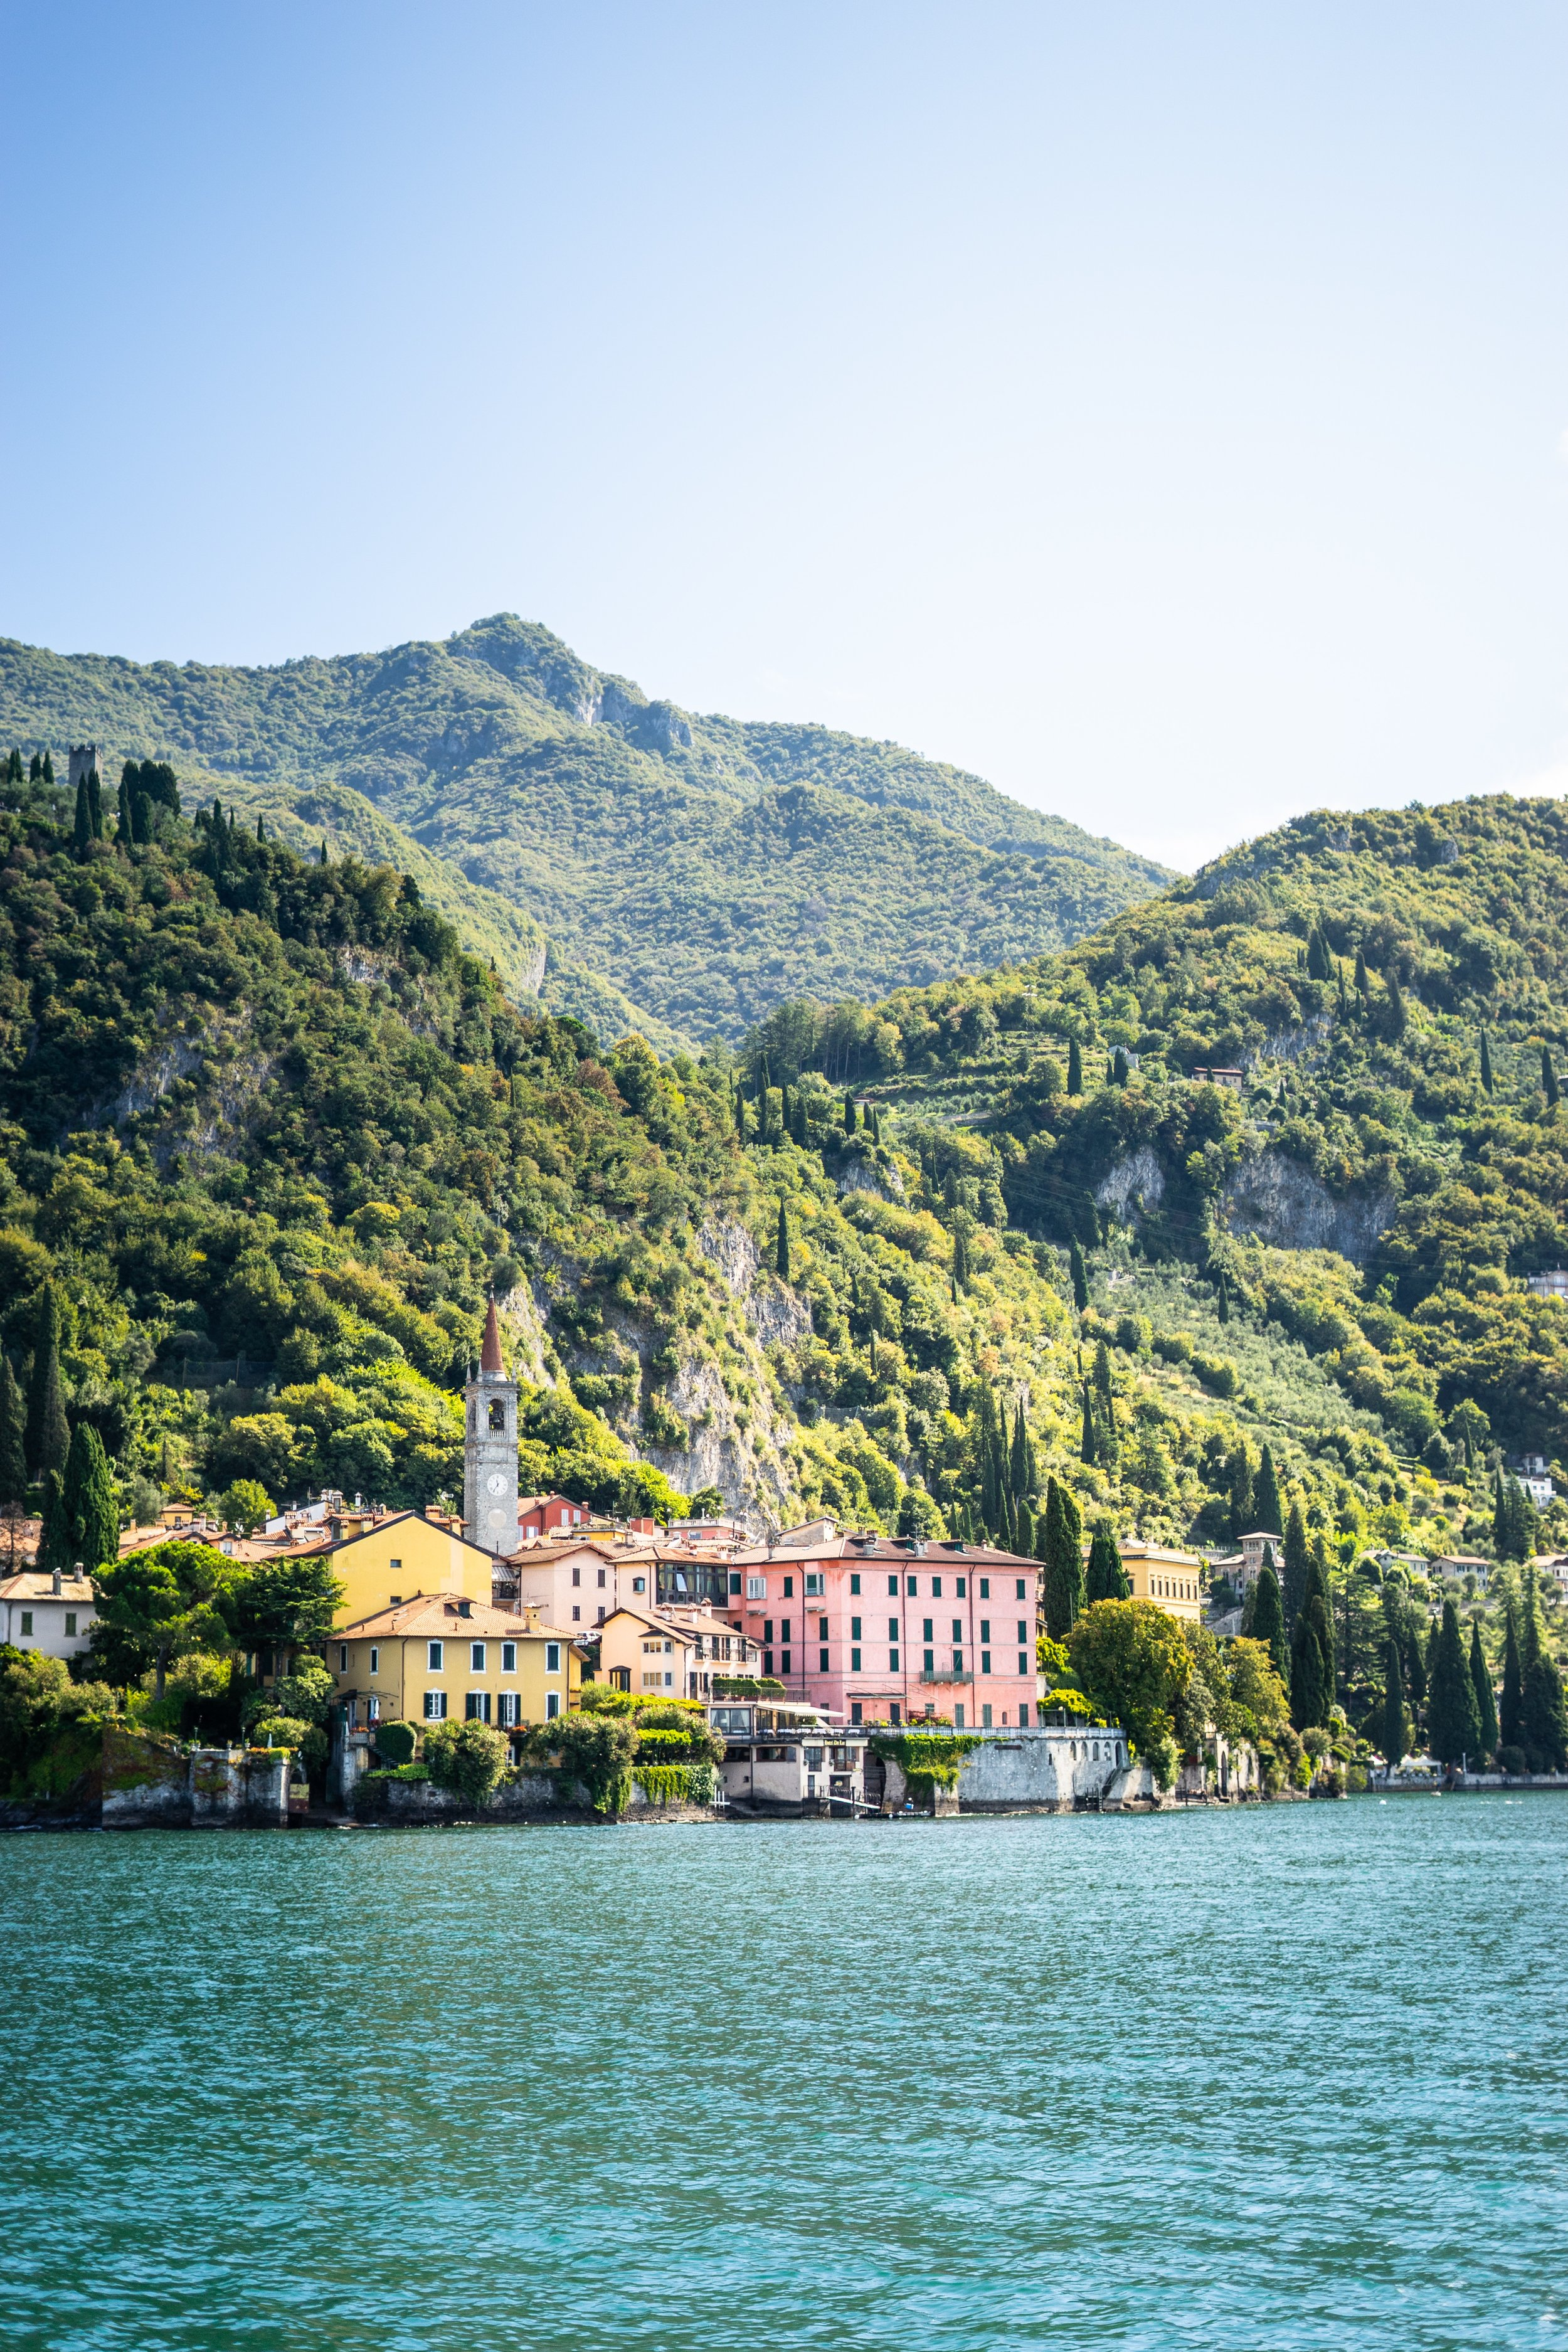 Lake Como, Italy by Jef Willemyns on Unsplash